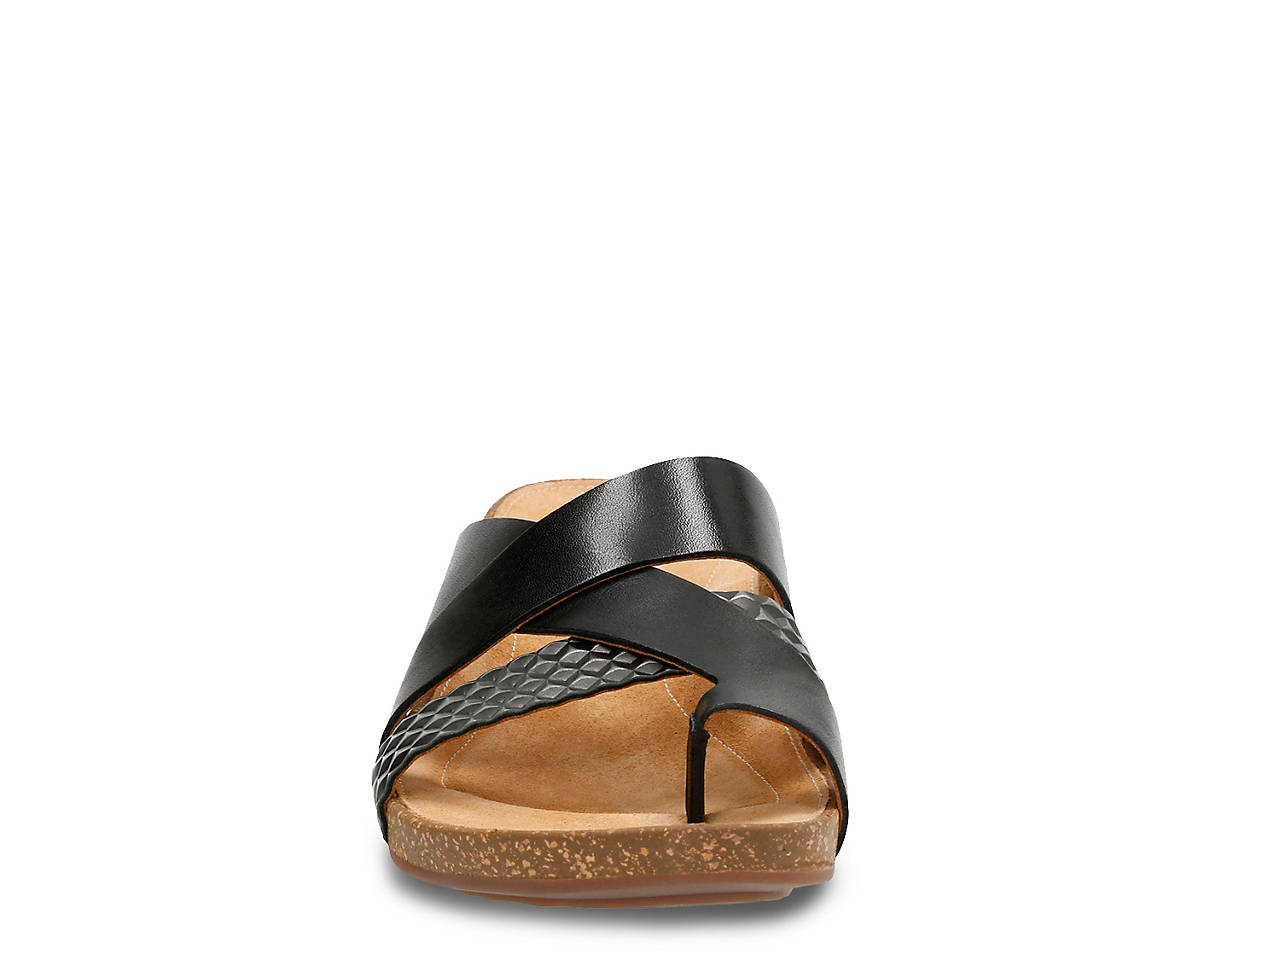 Clarks Women's Perri Bay Fashion Sandals